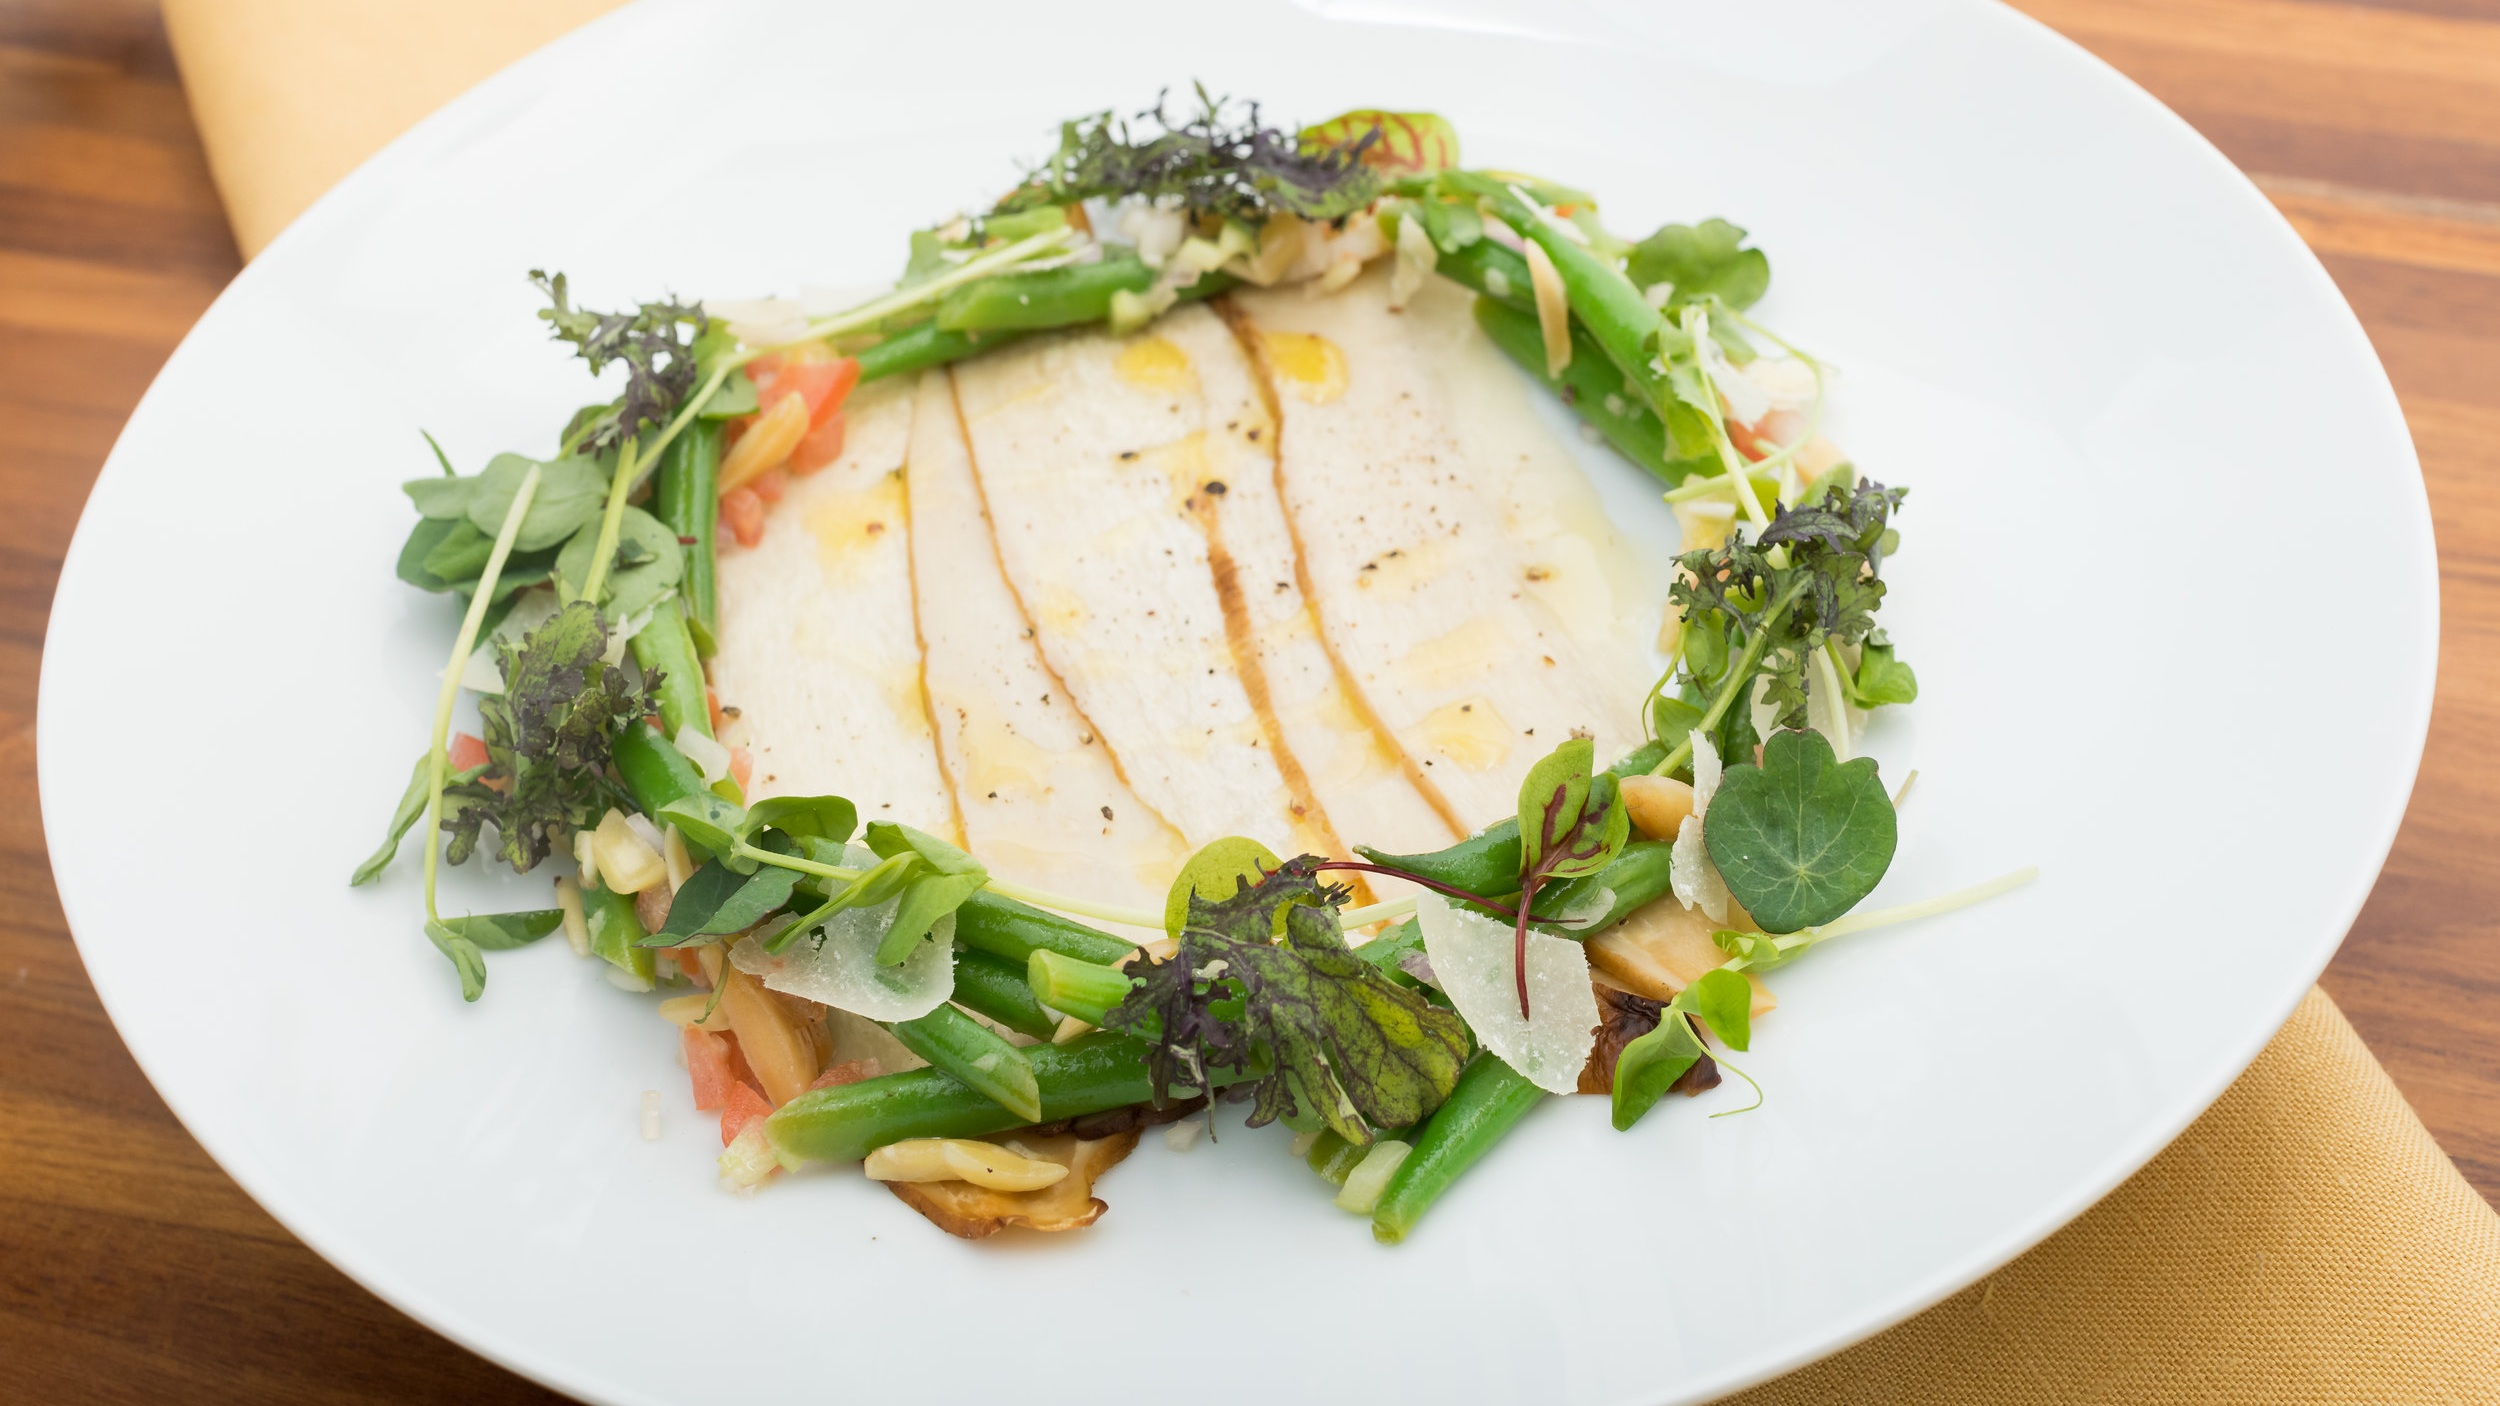 King Trumpet Oyster Mushroom Carpaccio w_Parmesan, Herb Salad, Almonds, Lemon_Amanda Gentile5.jpg